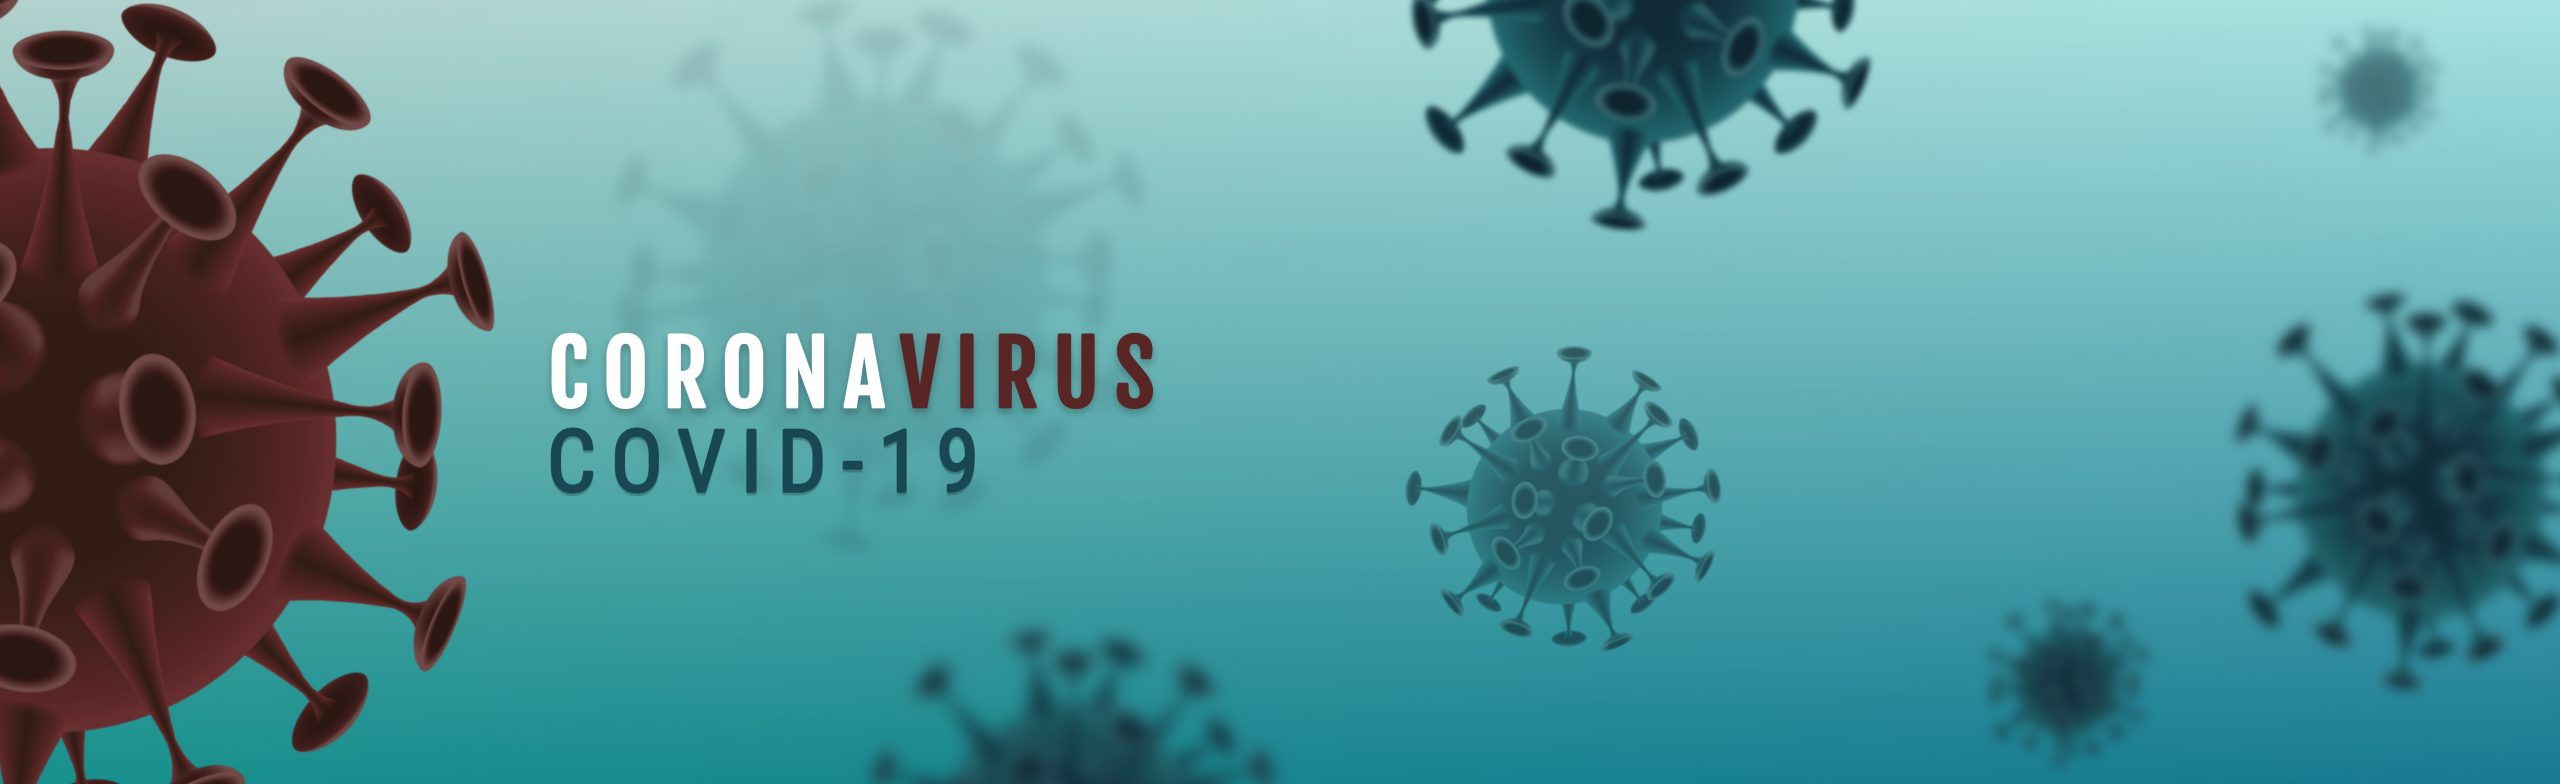 HHS Announces Over $4 Billion in Additional Relief Payments to Healthcare Providers Impacted by Coronavirus